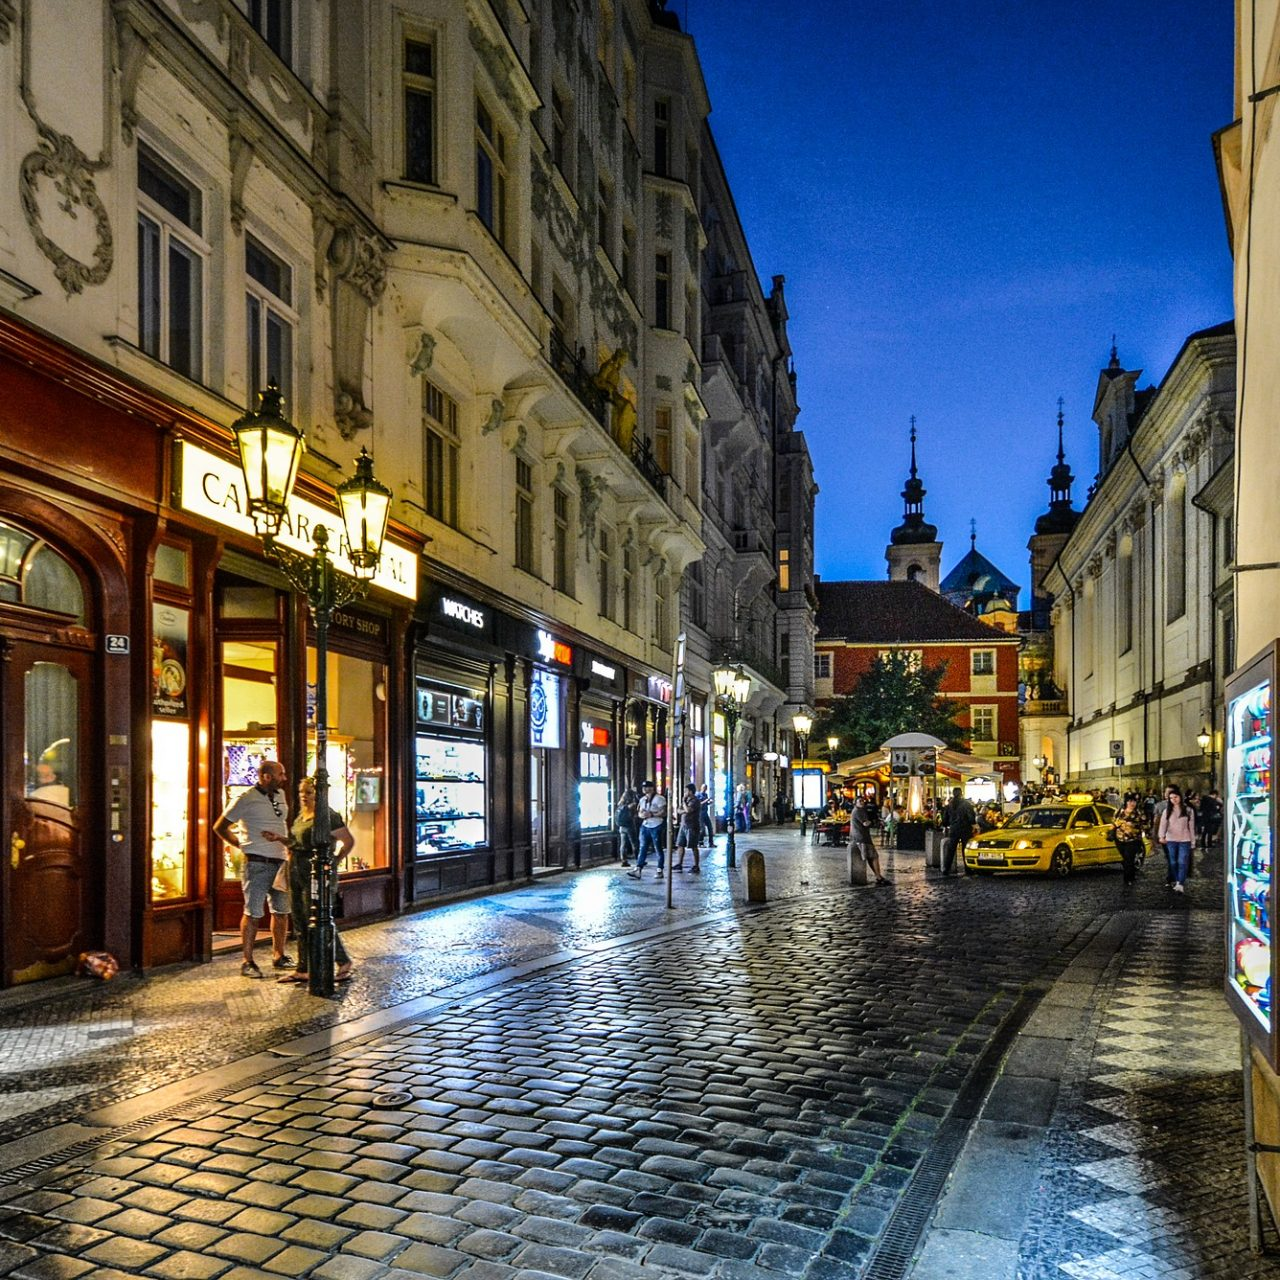 https://silvija-turist.hr/wp-content/uploads/2019/01/prague-2041008_1920-1280x1280.jpg